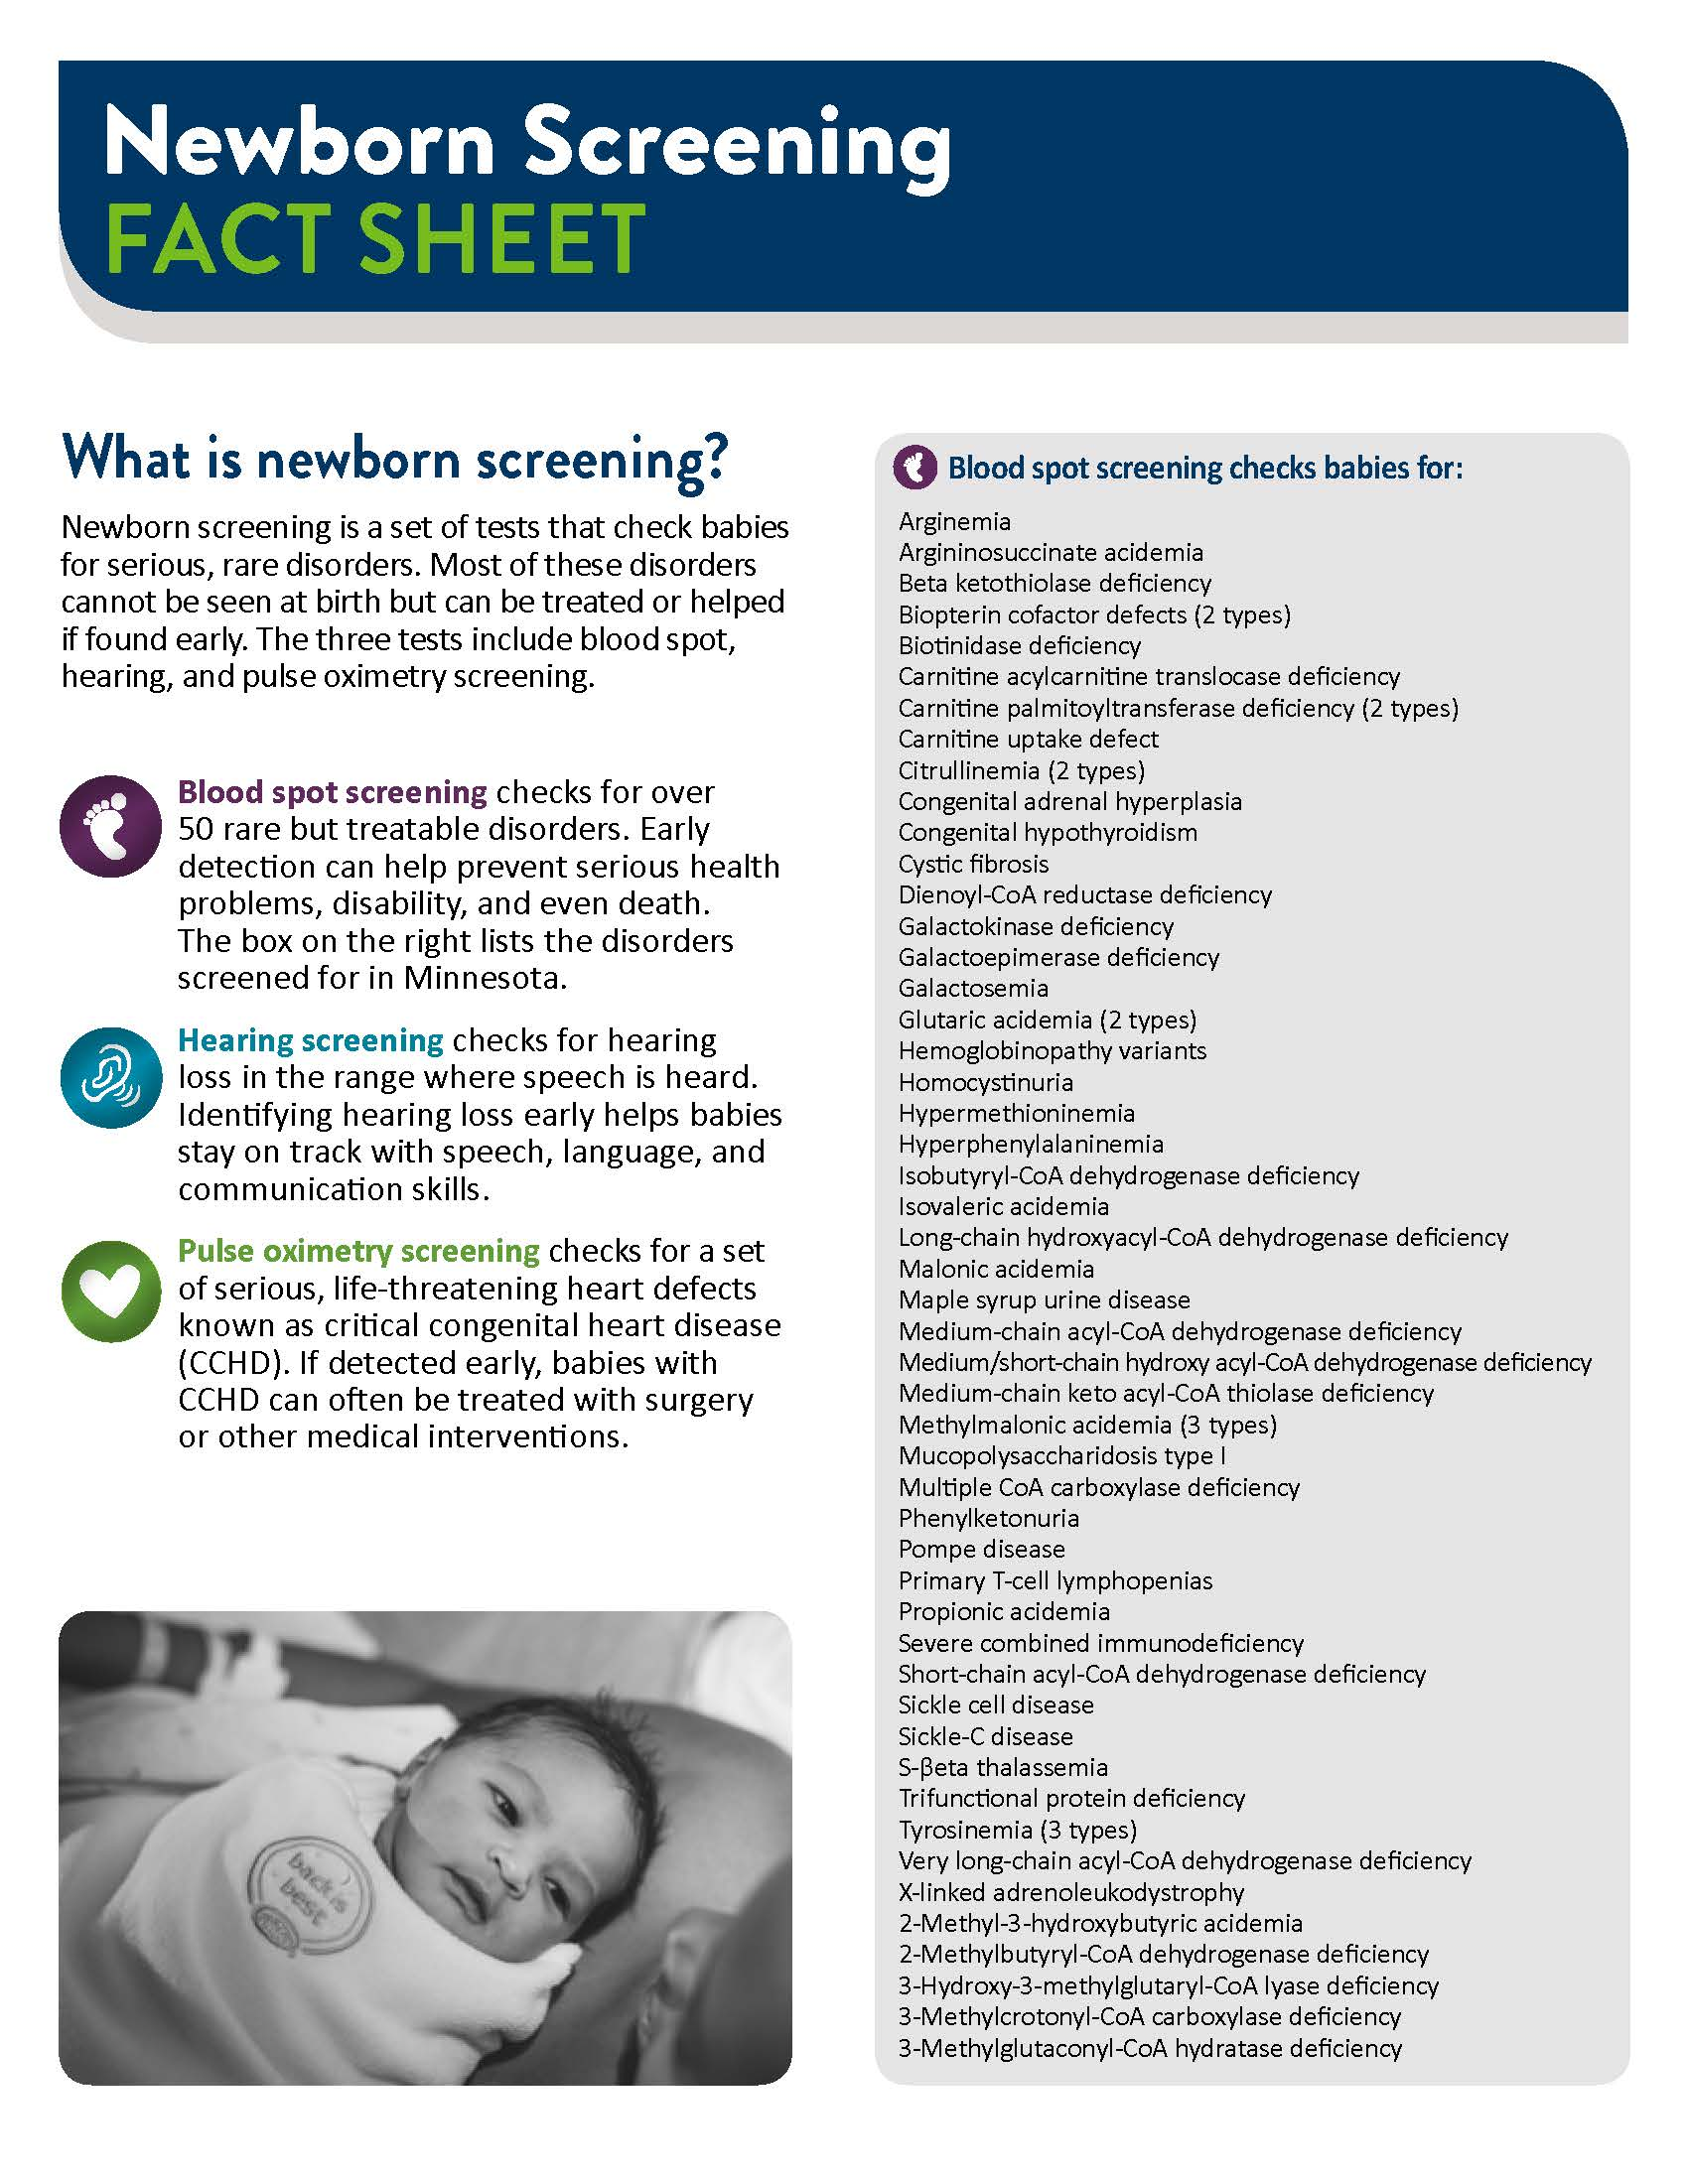 Minnesota Newborn Screening Fact Sheet